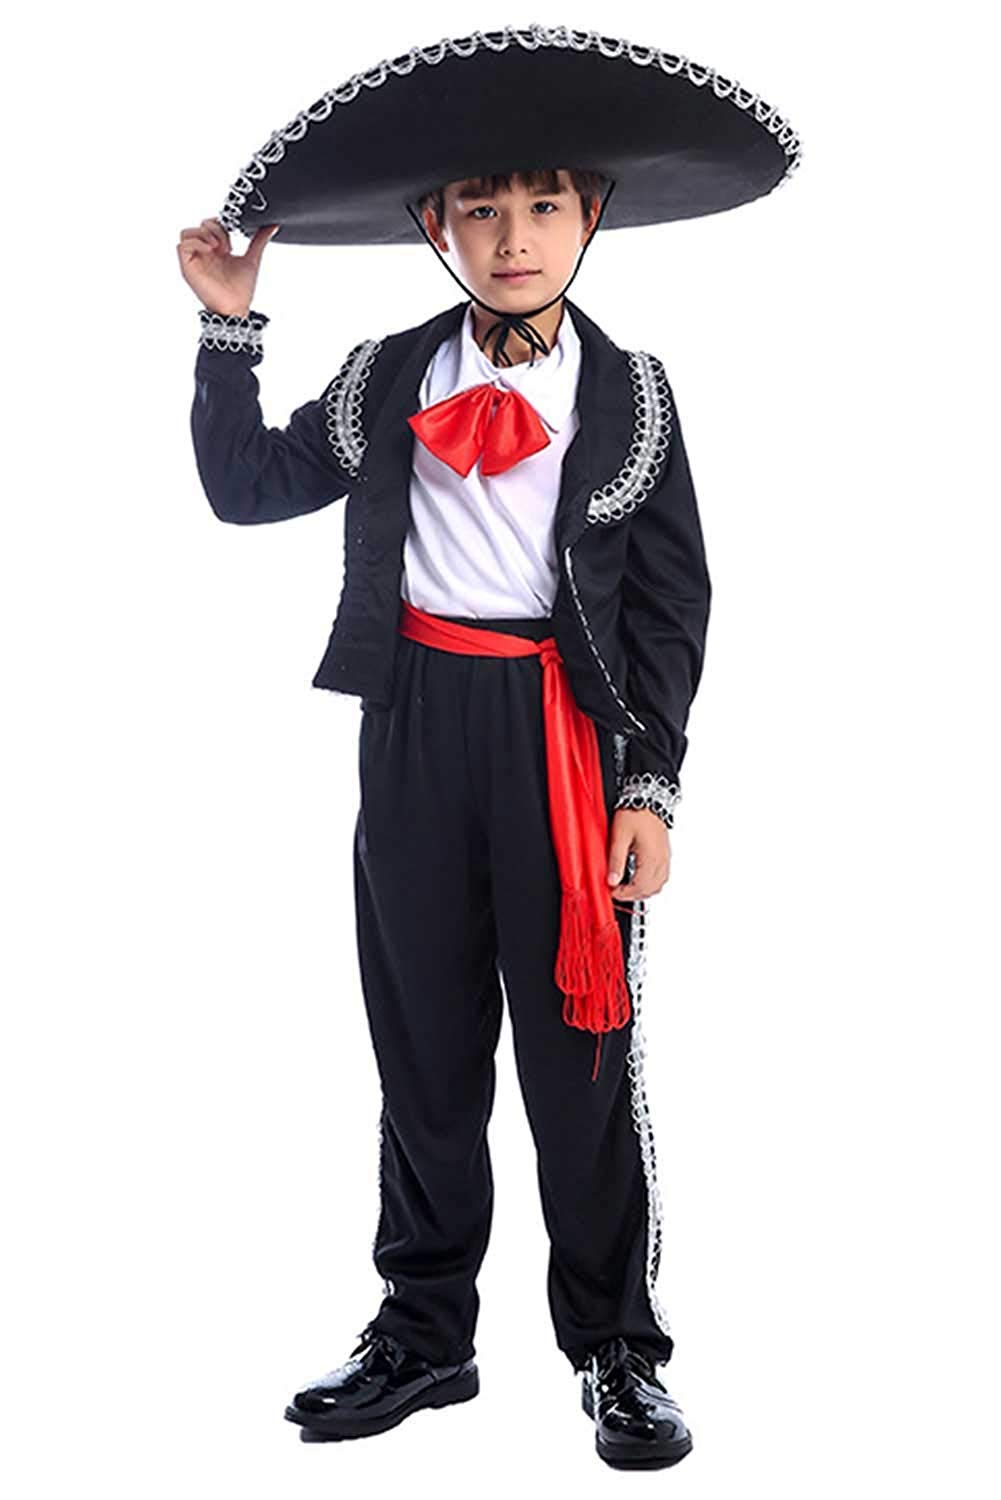 Skymecos Kids Mexican Mariachi Costume Theme Party Sombrero Senor Outfit 3-14 Years